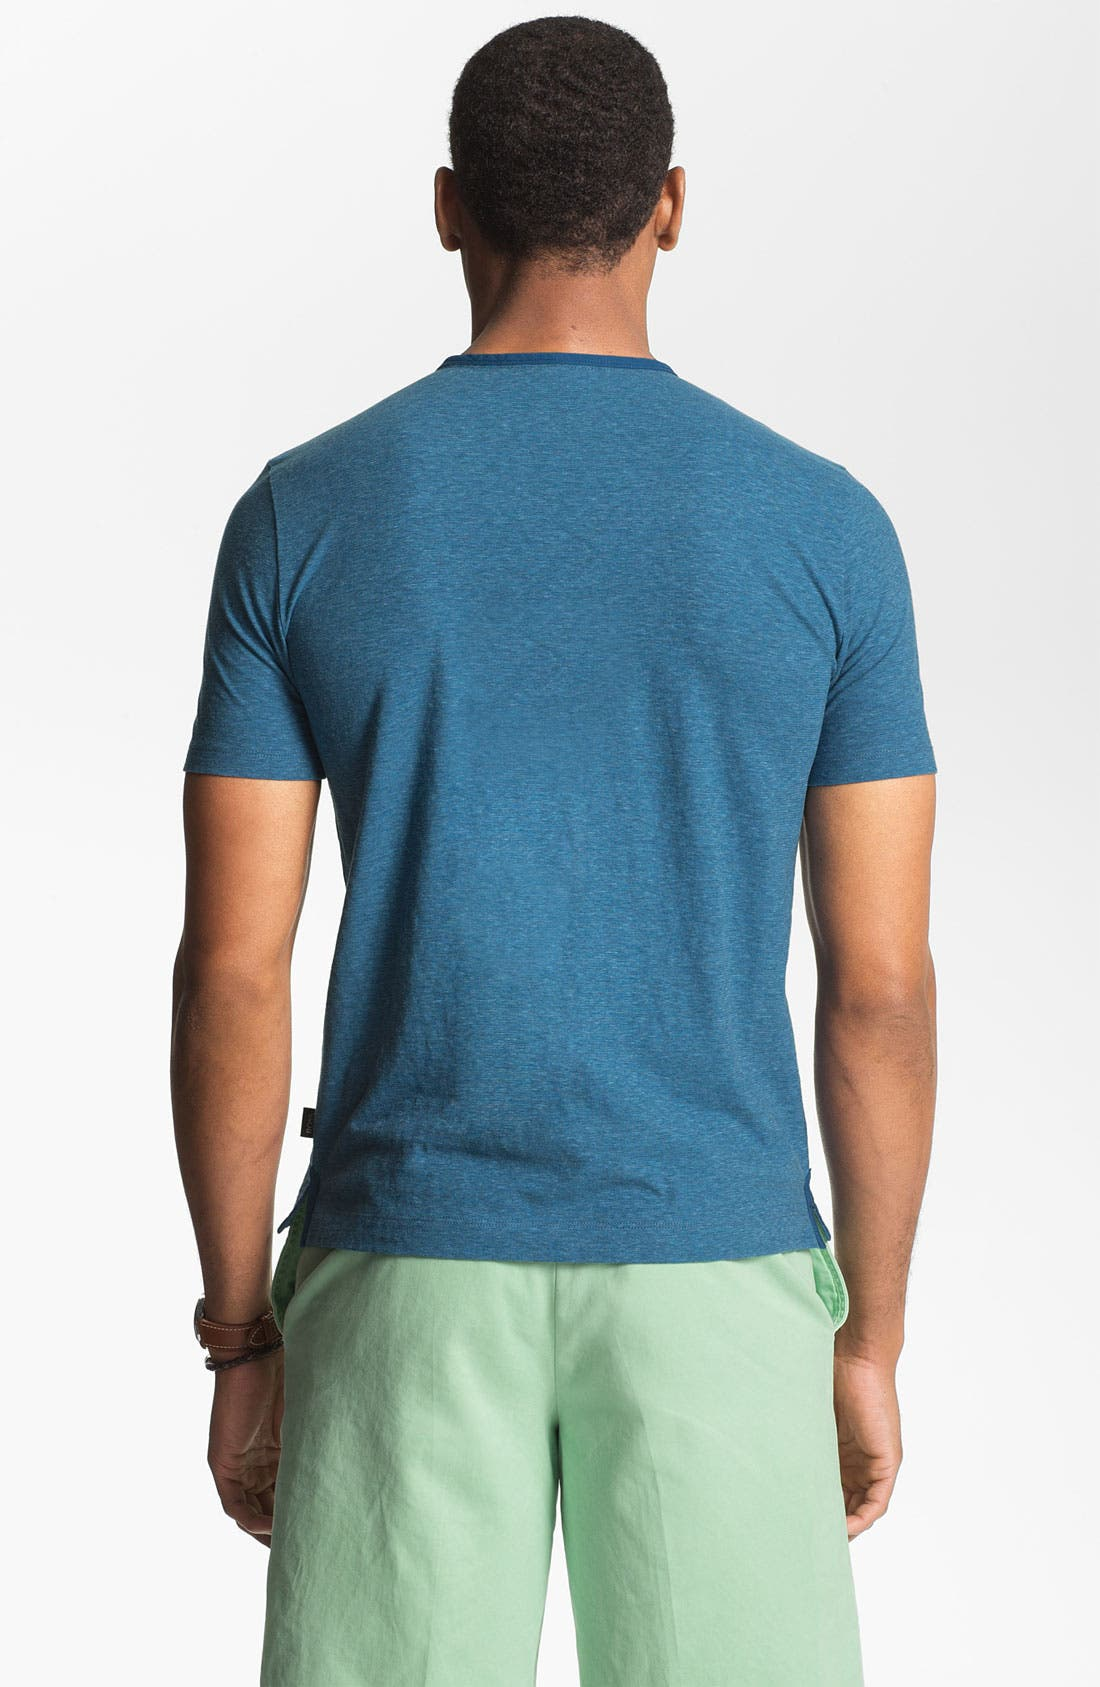 Alternate Image 2  - BOSS HUGO BOSS 'Eraldo 53' V-Neck T-Shirt